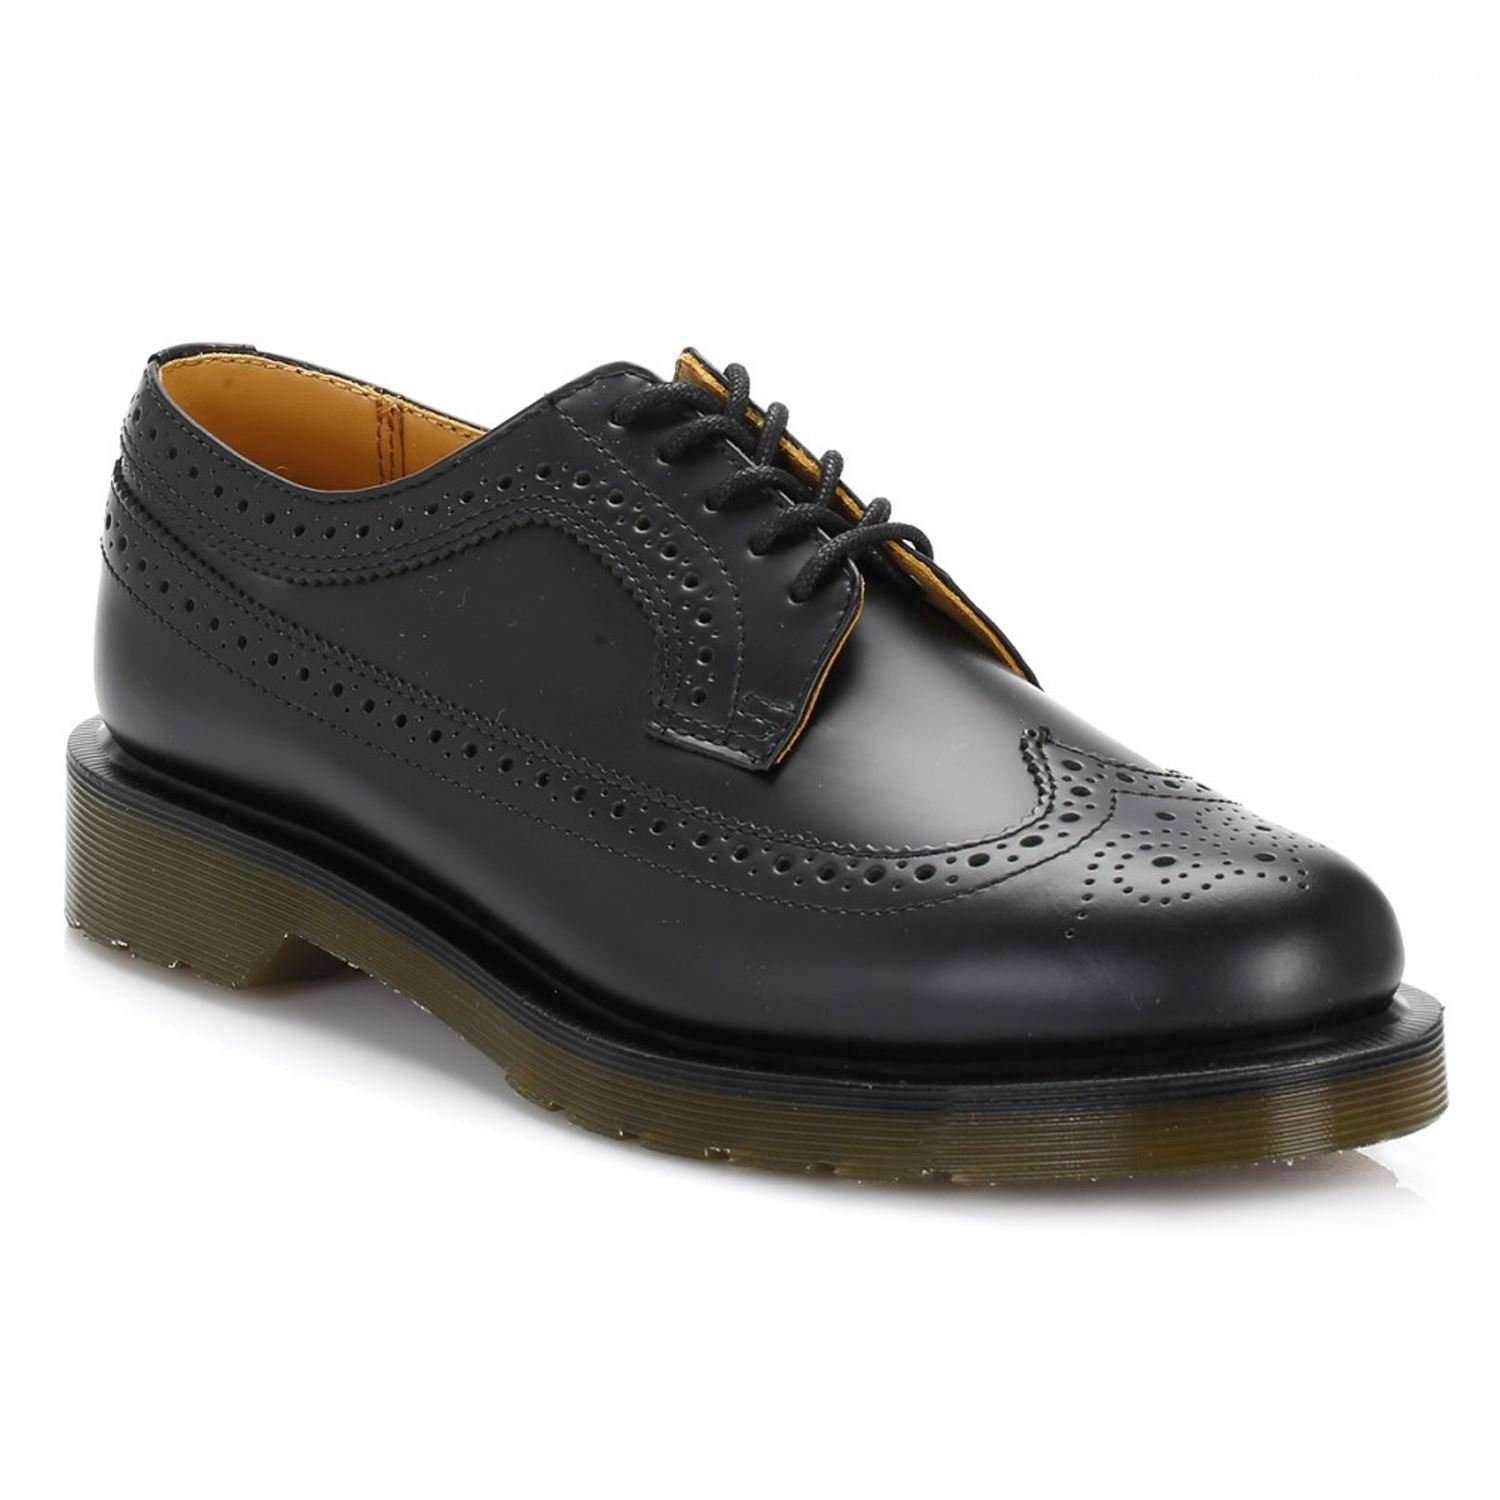 Dr. Martens Unisex 3989 Smooth Fashion Oxfords, Black, Leather, 8 M UK, M9/W10 M US